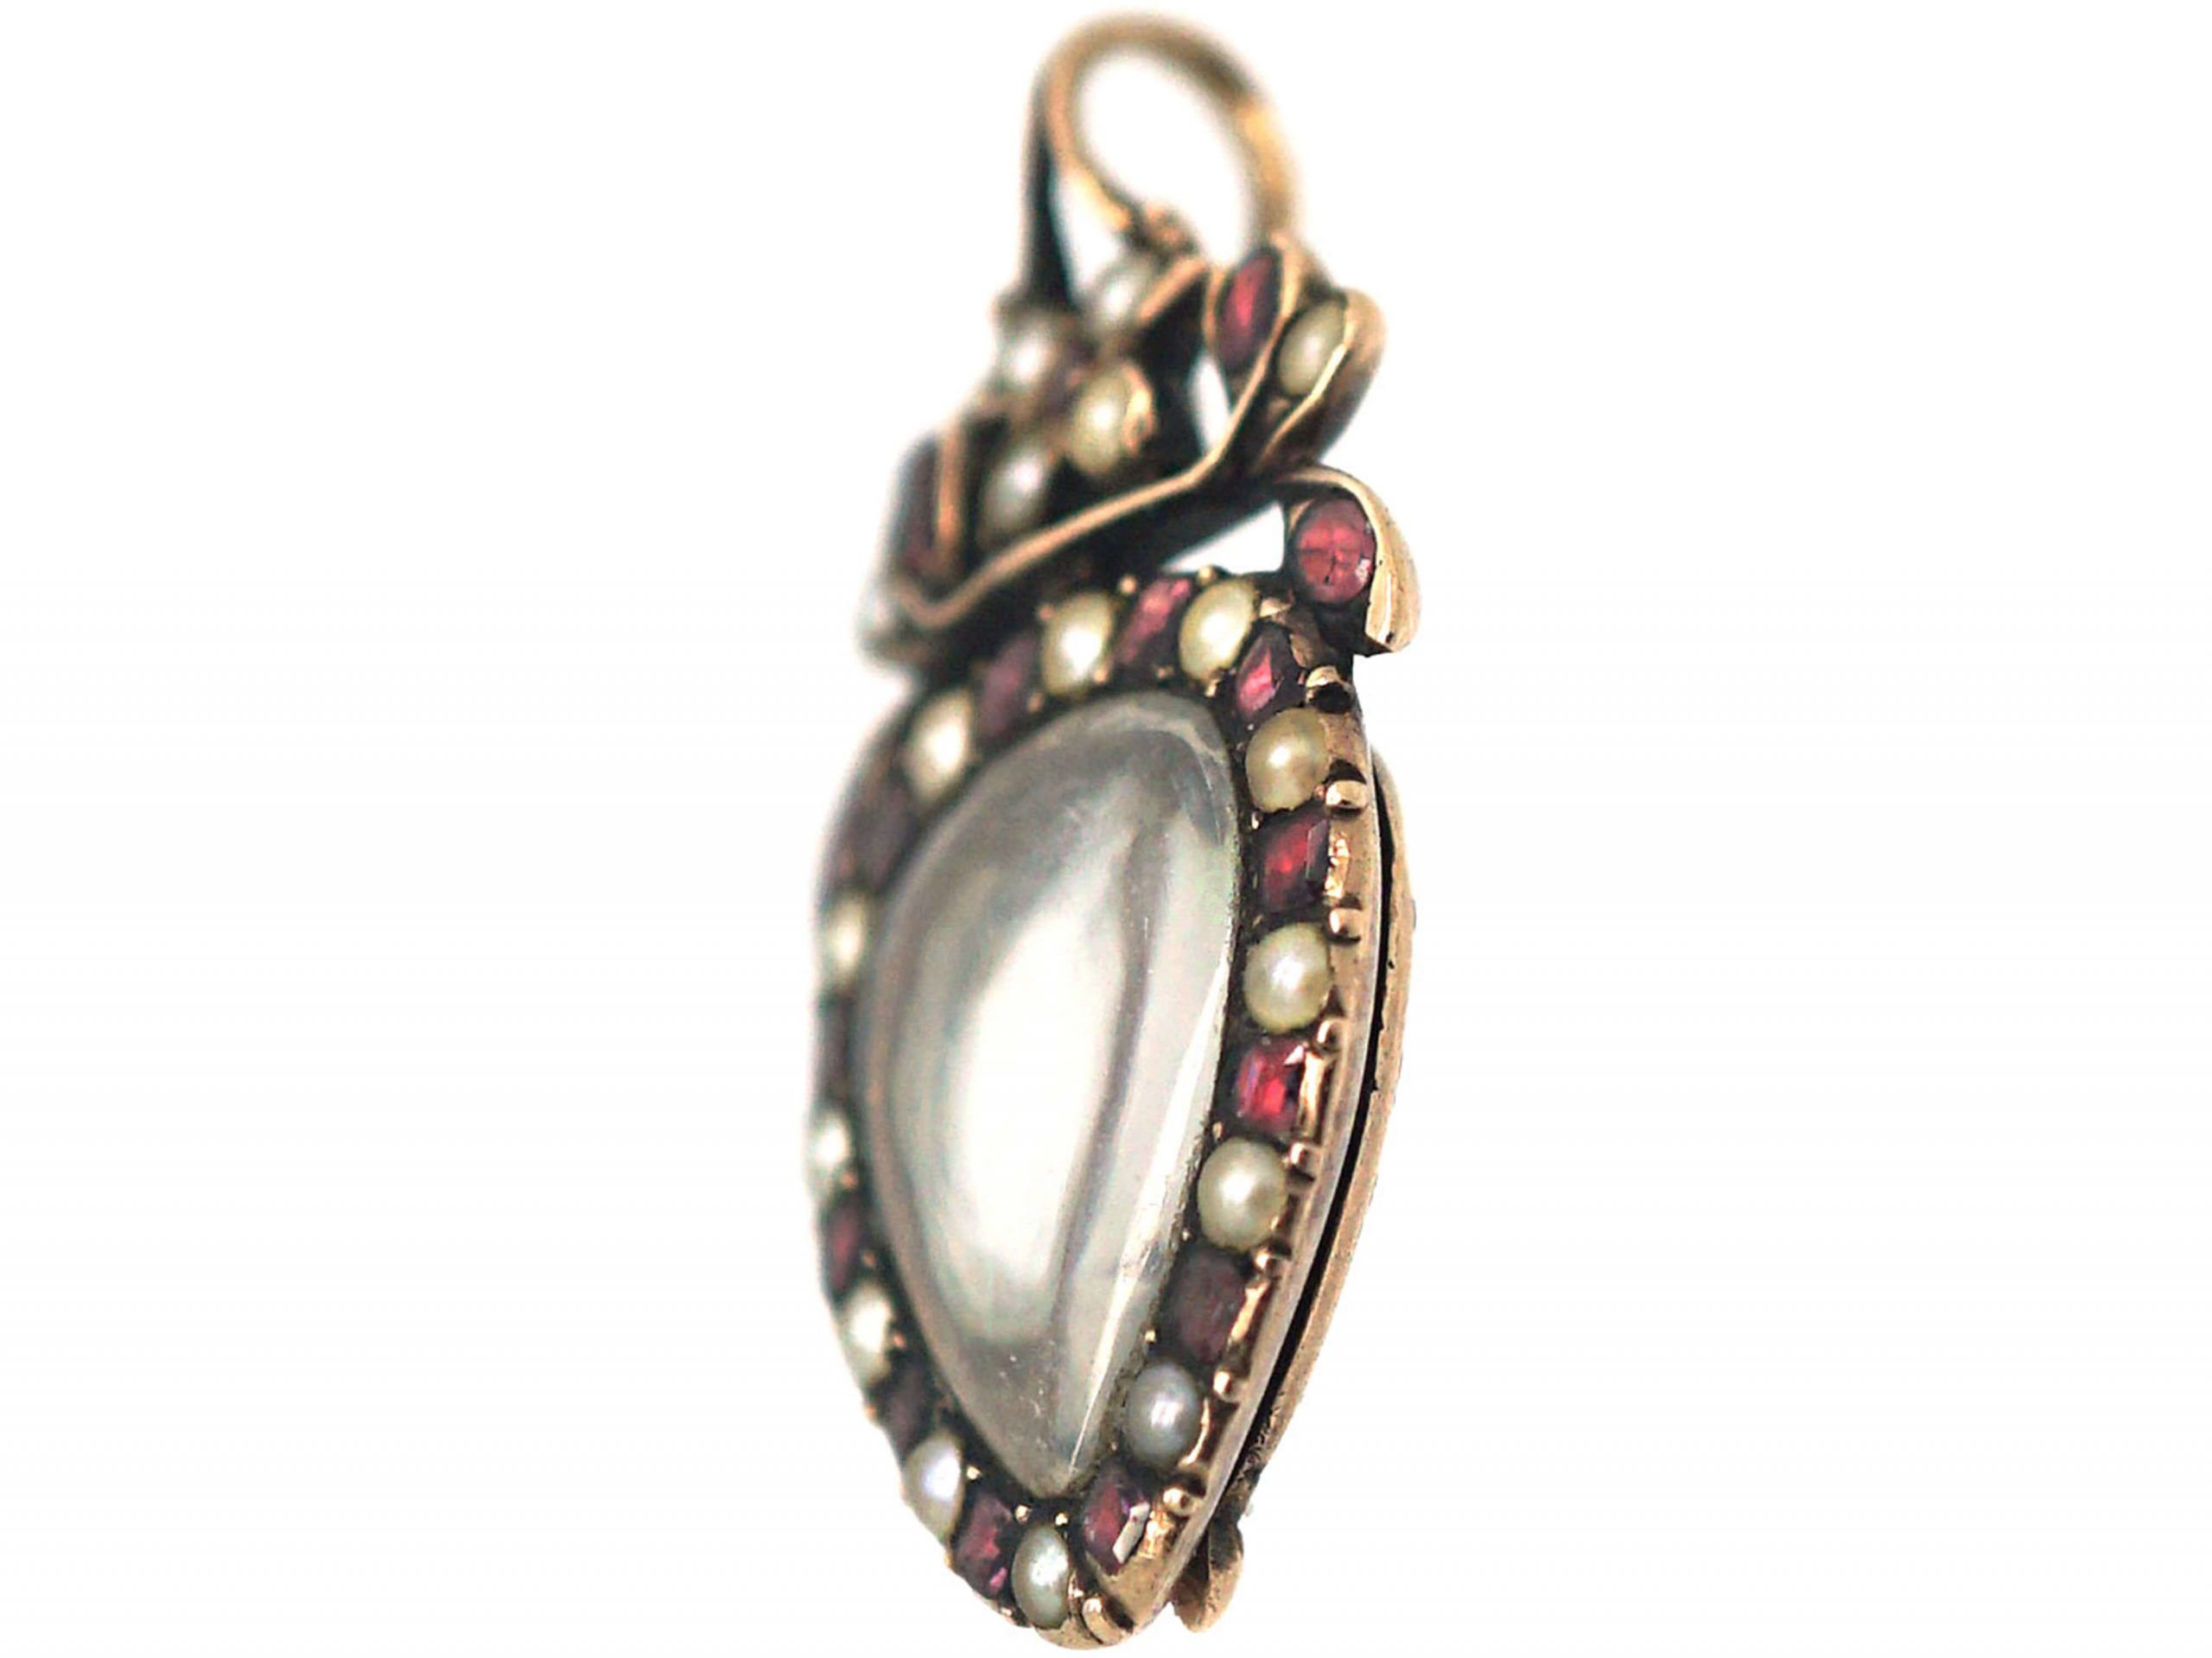 Georgian Heart Shaped Pendant set with Garnets & Natural Split Pearls with Hinged Locket on the Reverse